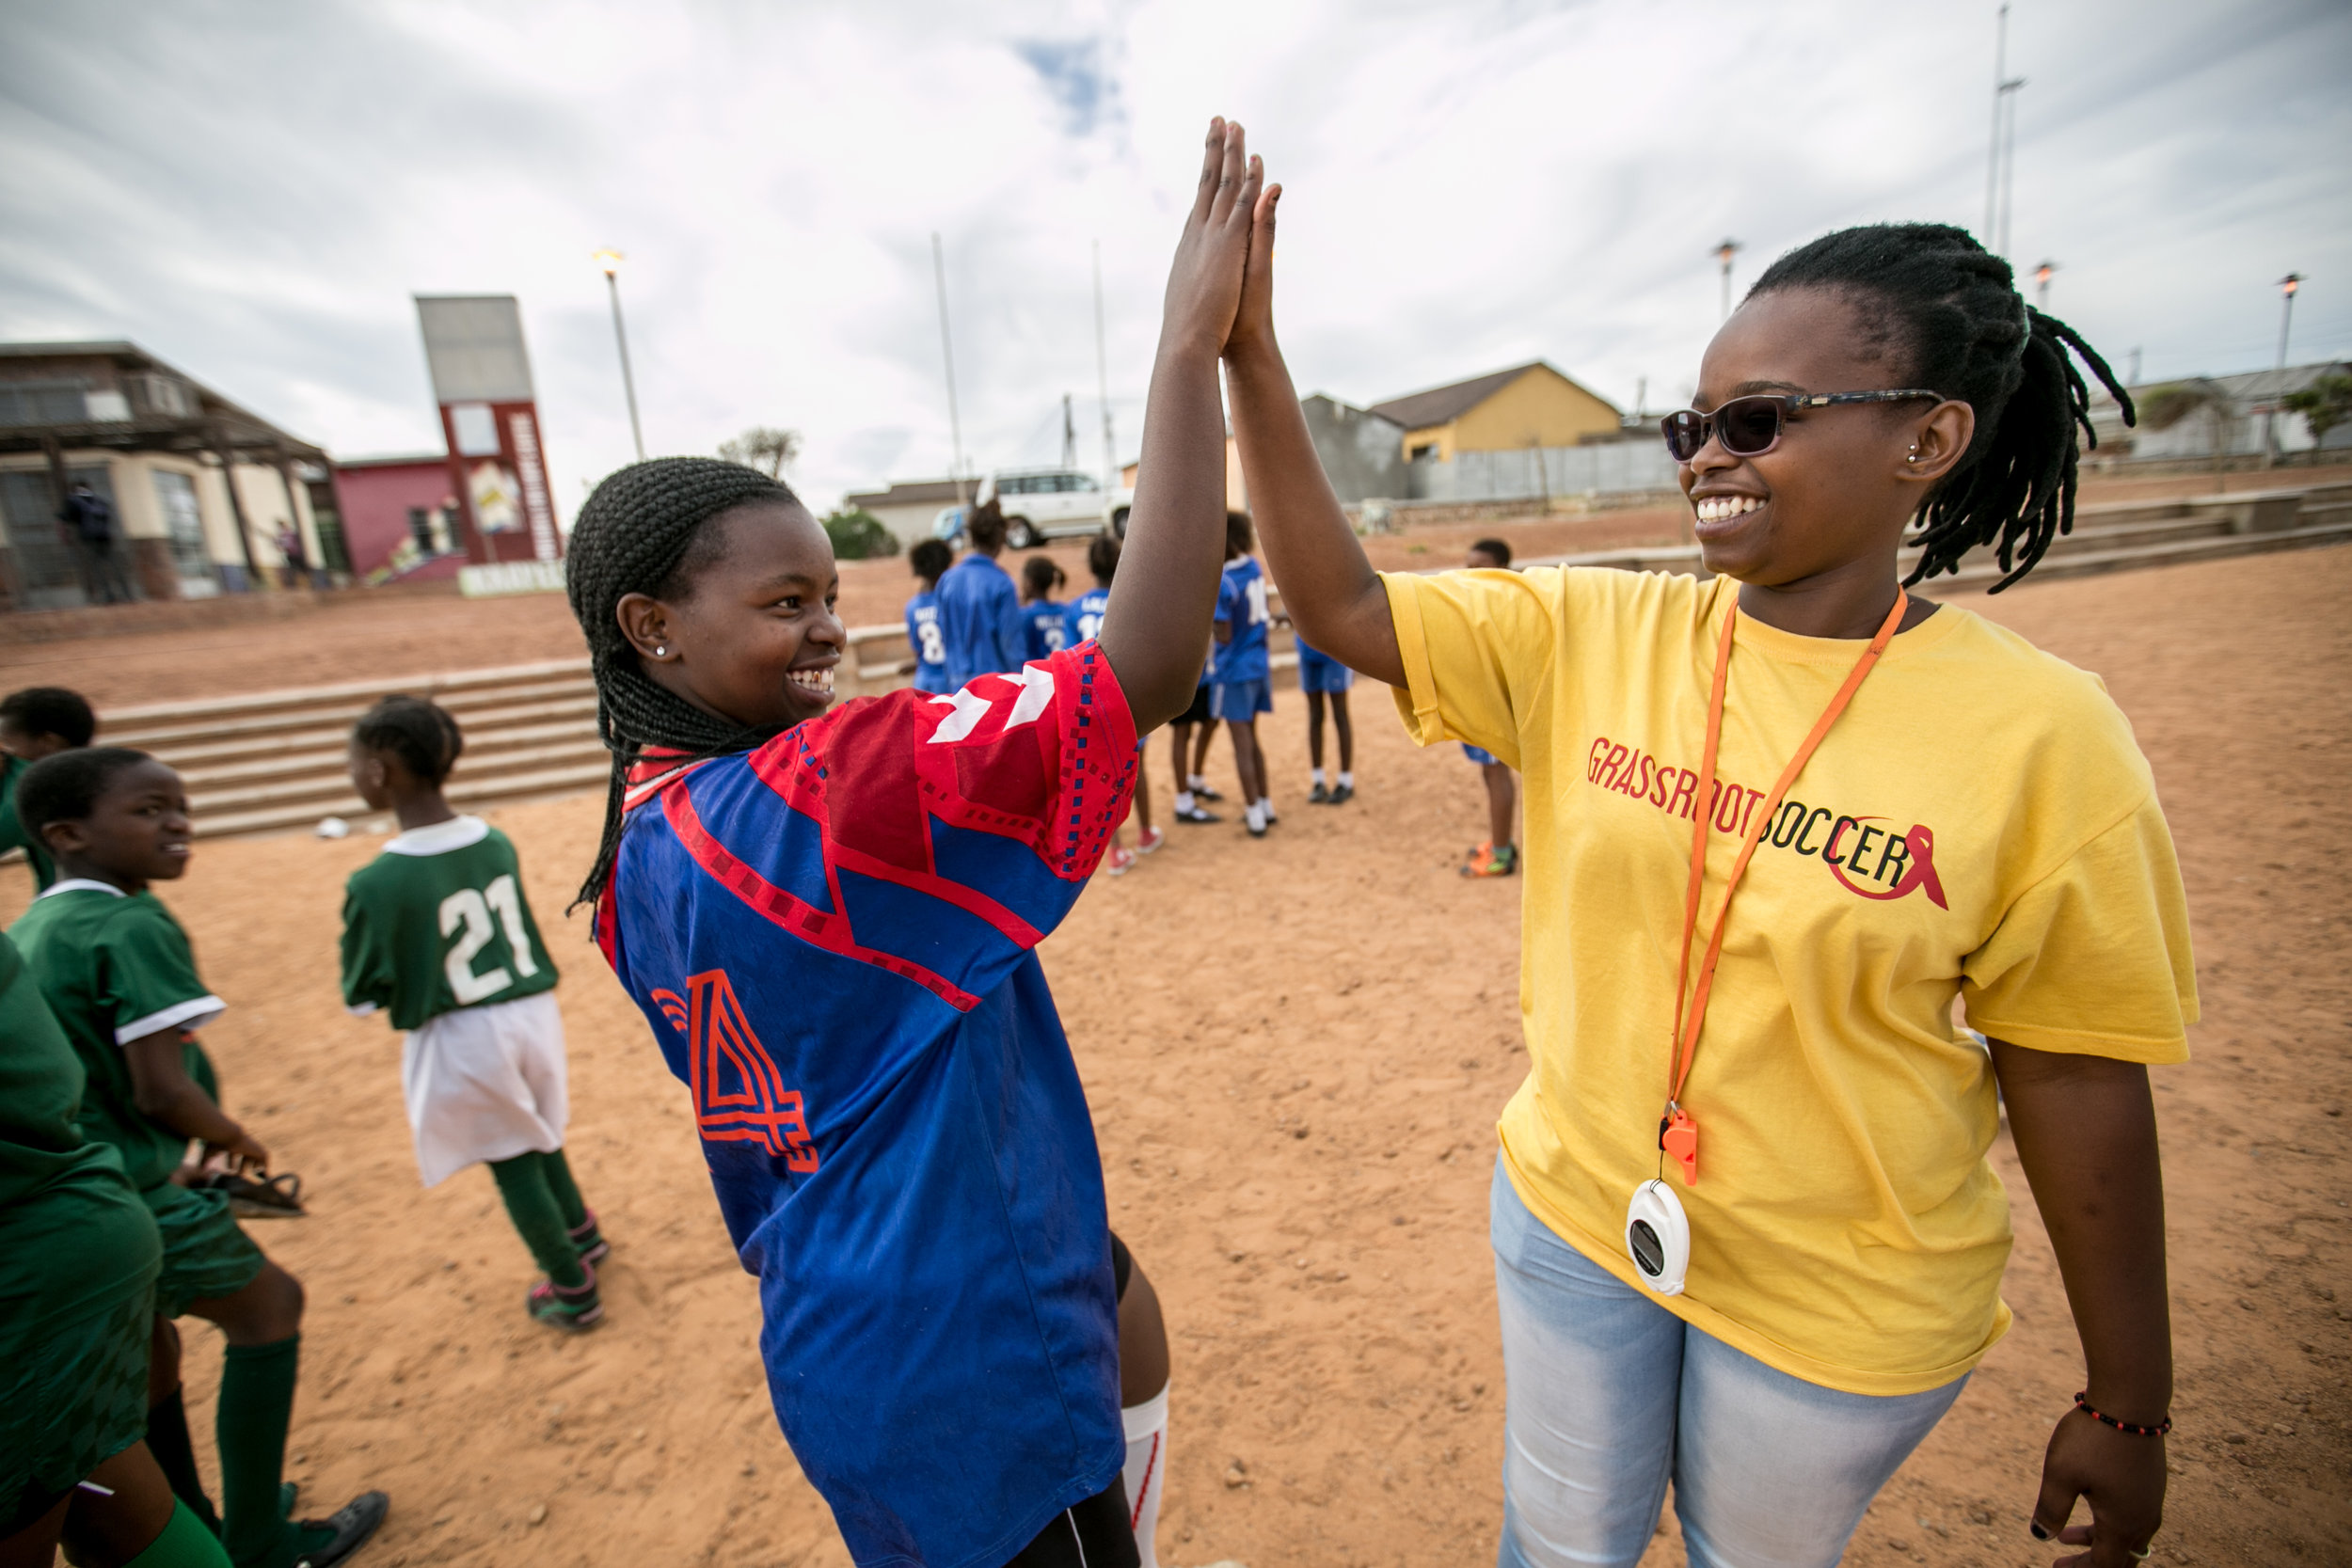 Photo: Courtesy of Karin Schrembrucker/GRS. SKILLZ. Coach Sonwabise (Sony) Dick celebrates with Grassroot Soccer SKILLZ Street graduate and volunteer, 15-year-old Yamkela Nqweniso, after a successful afternoon of SKILLZ HIV-awareness activities with female SKILLZ participants in Khayelitsha, South Africa's fastest growing township.